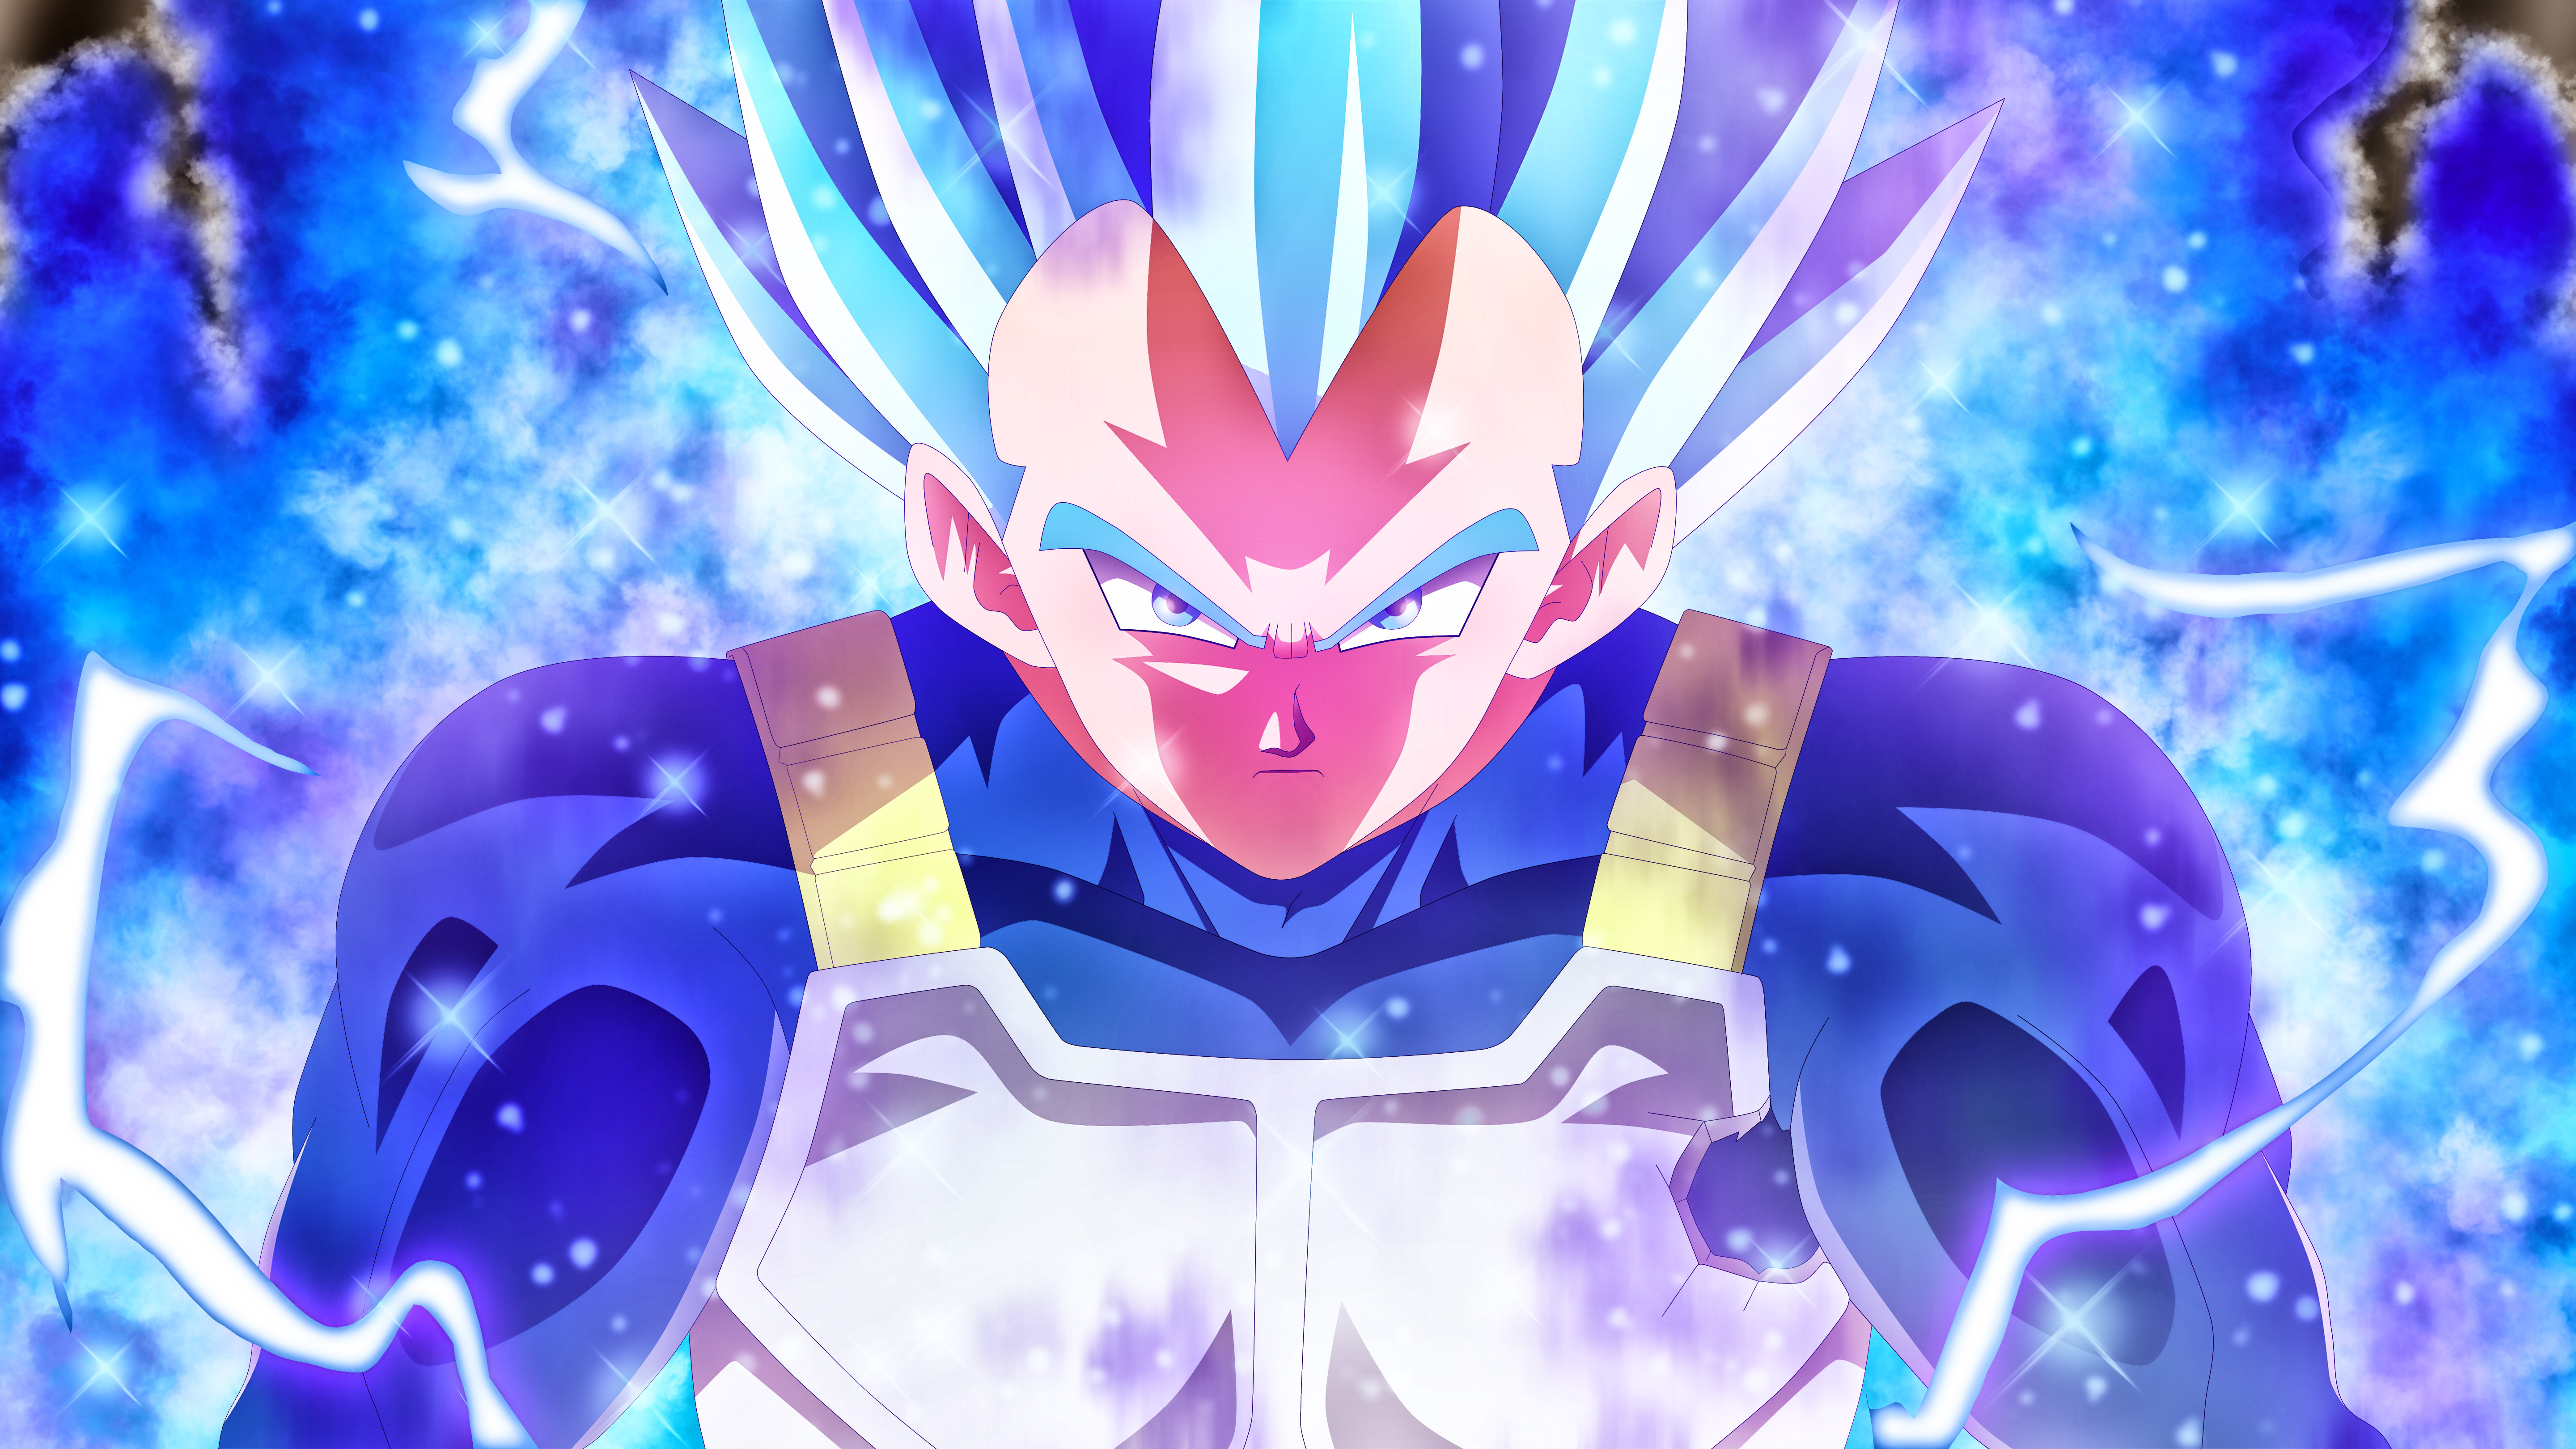 Vegeta blue 5k anime hd anime 4k wallpapers images - Vegeta wallpapers for mobile ...